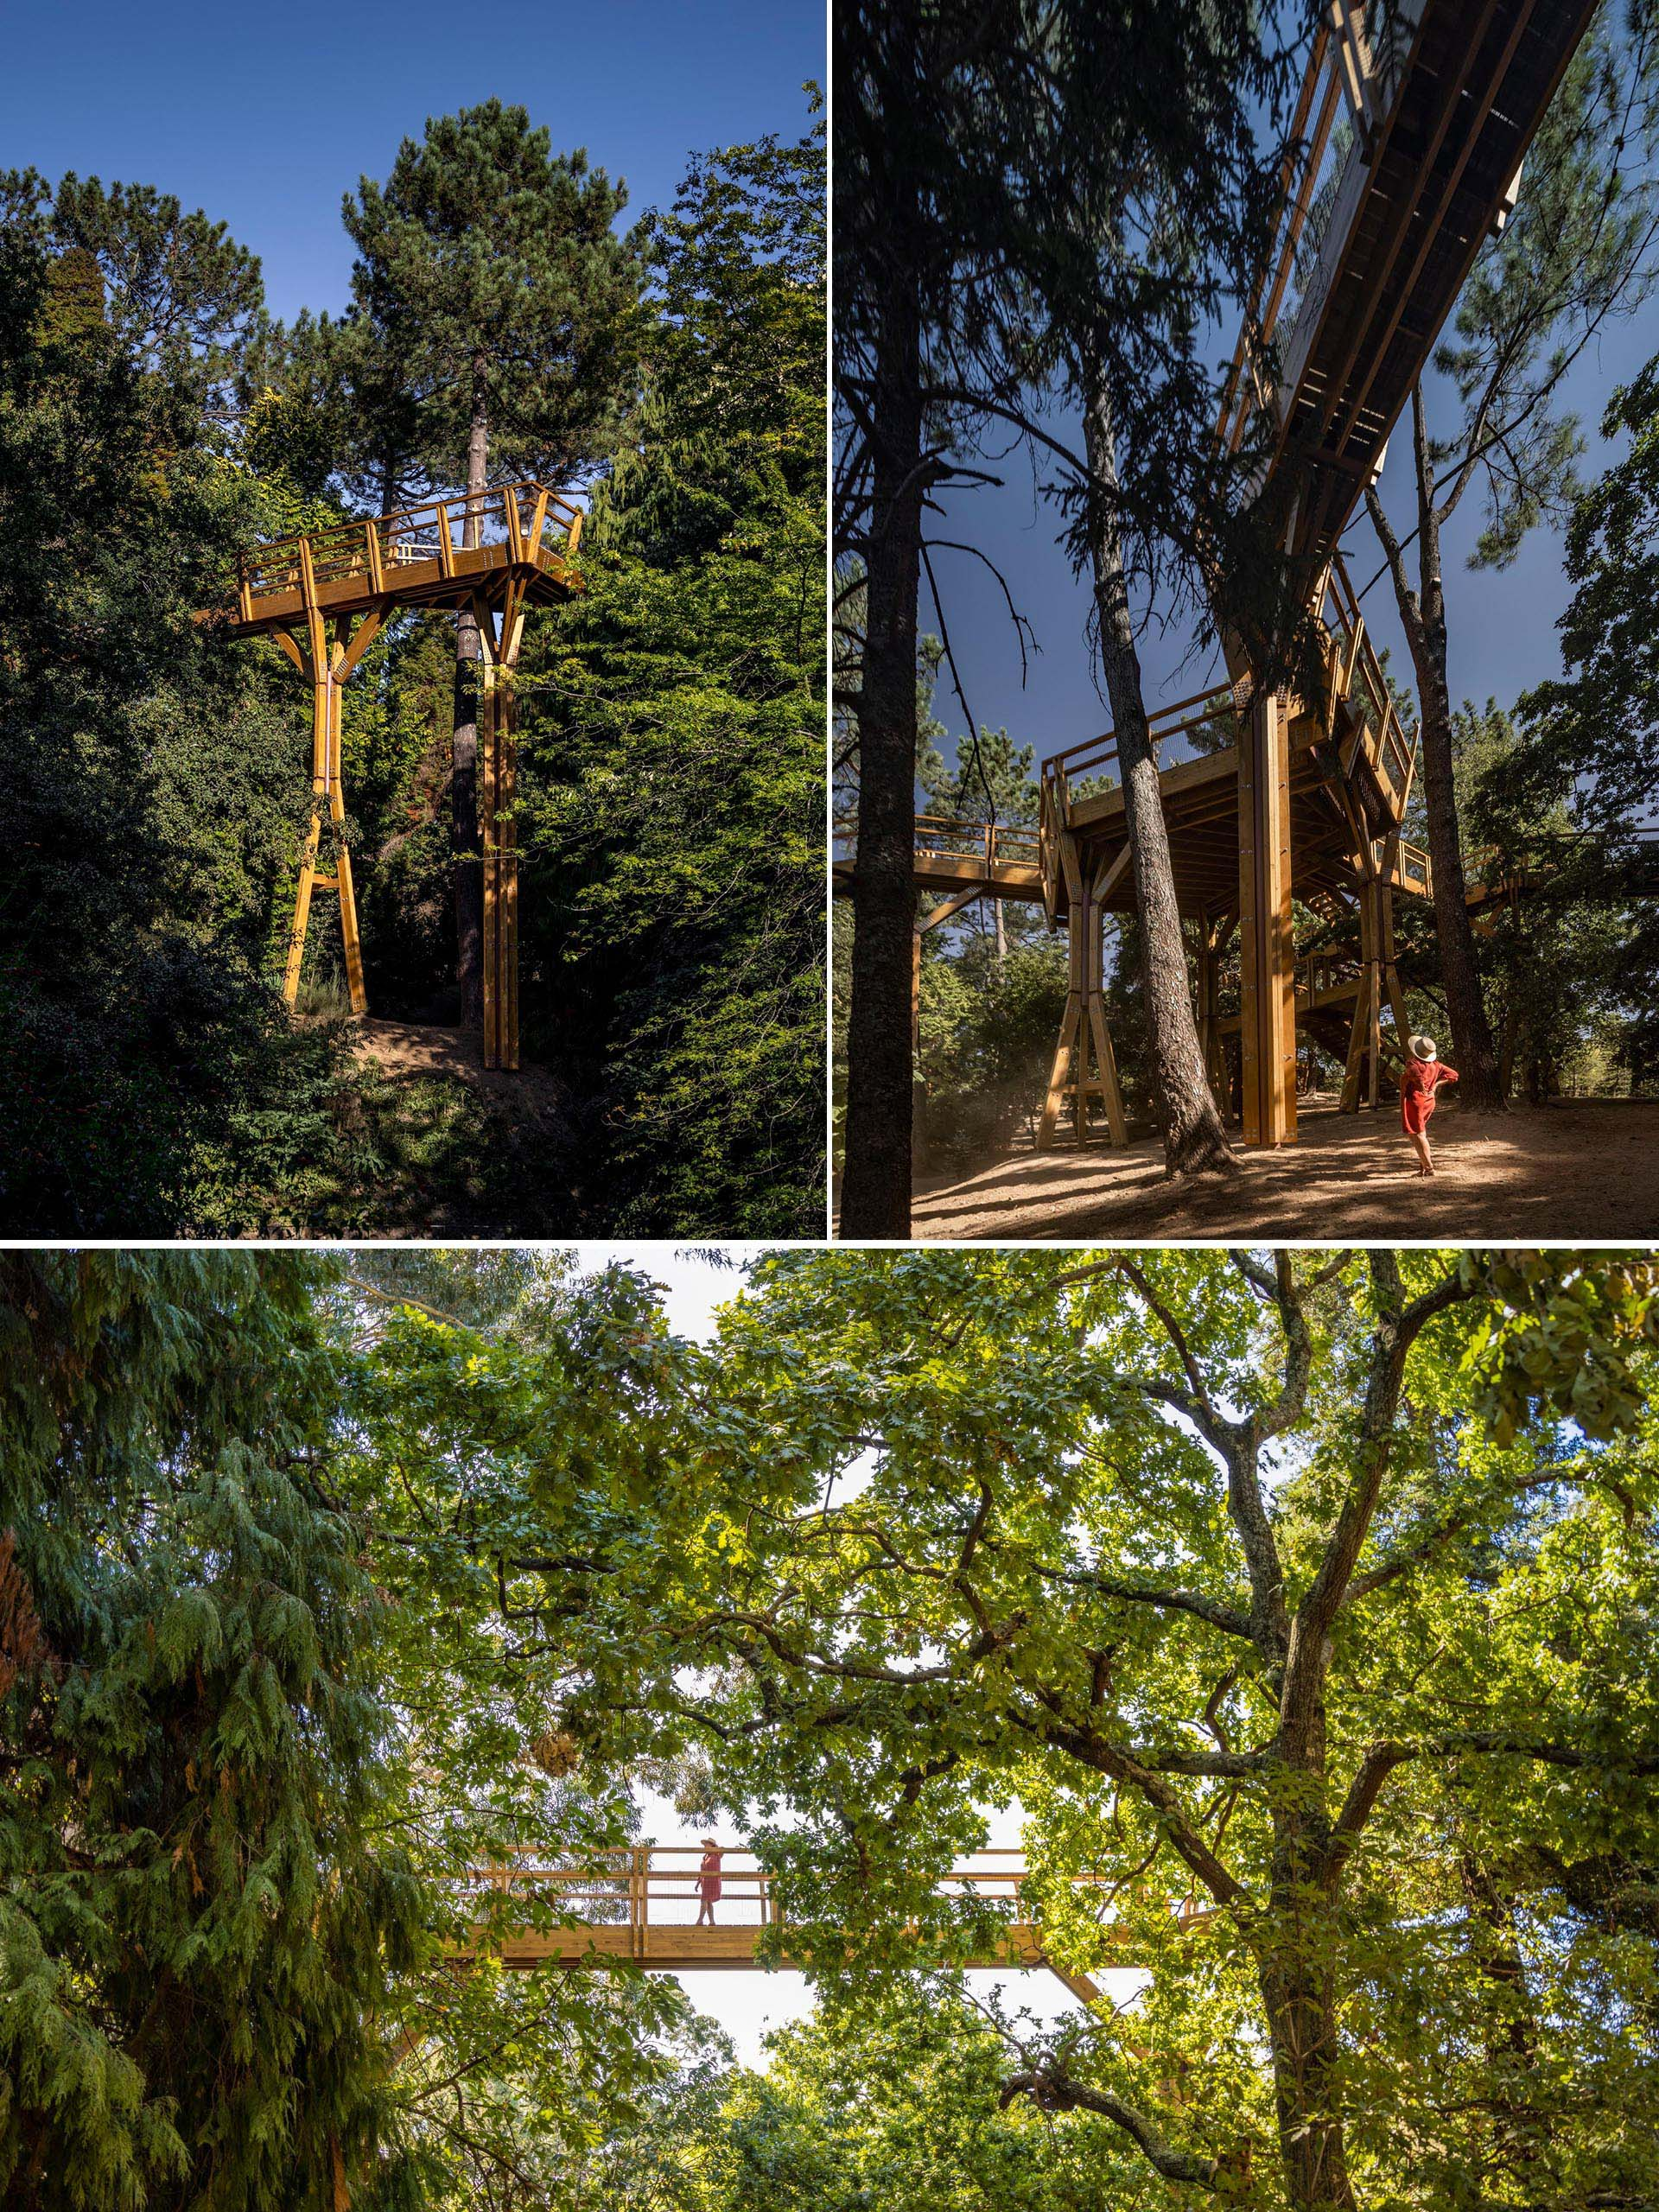 A treetop canopy walk in Portugal gives visitors a unique view.